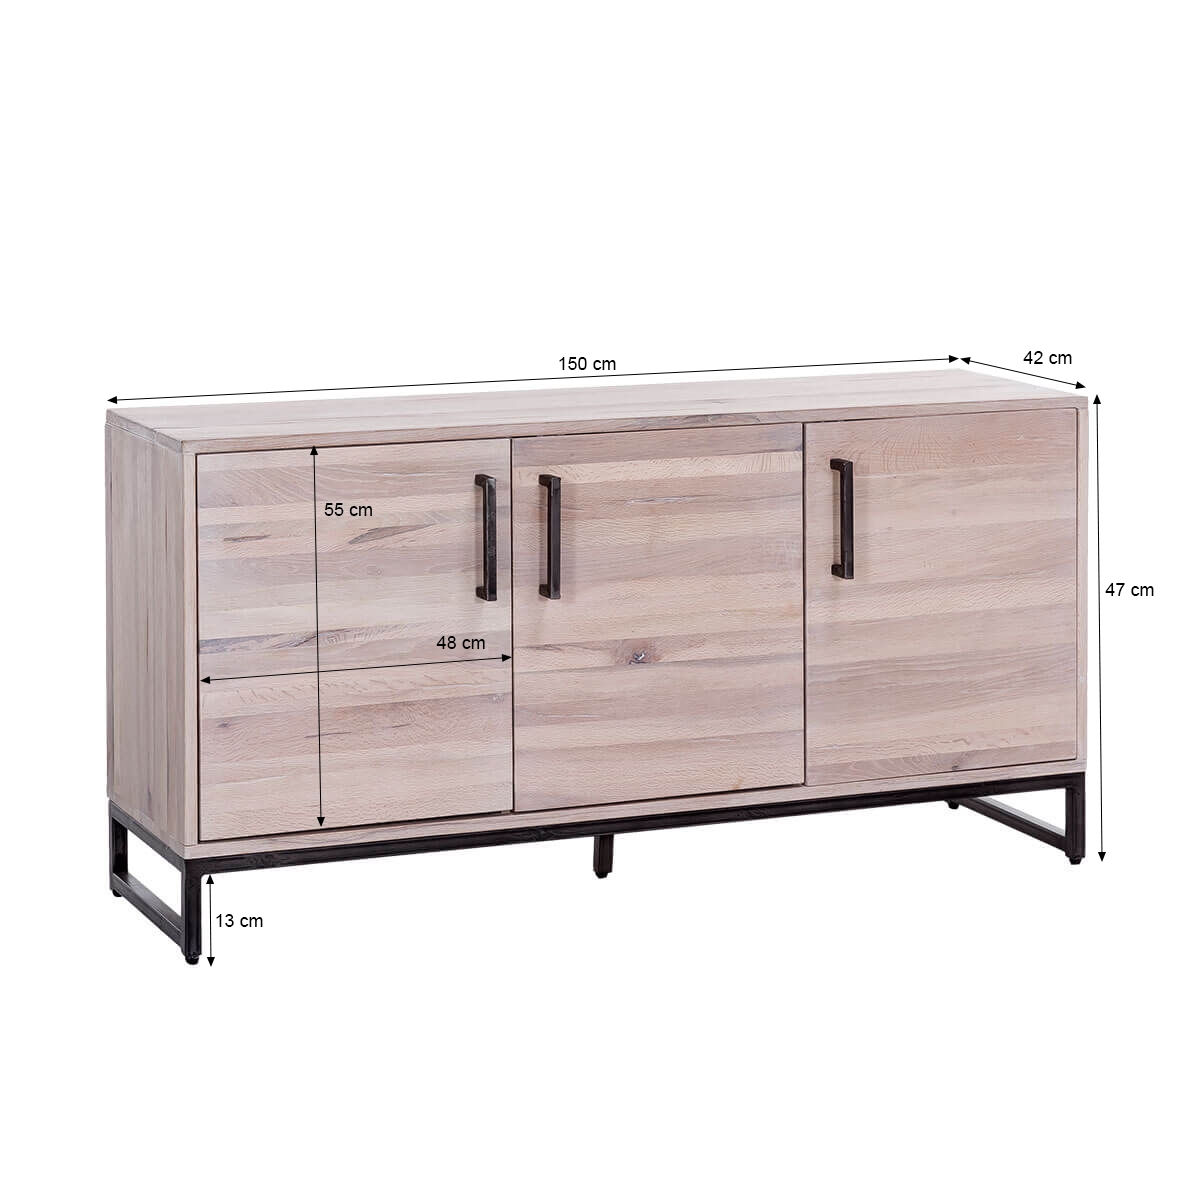 sideboard solidon in wildeiche gek lkt 150 cm breit. Black Bedroom Furniture Sets. Home Design Ideas